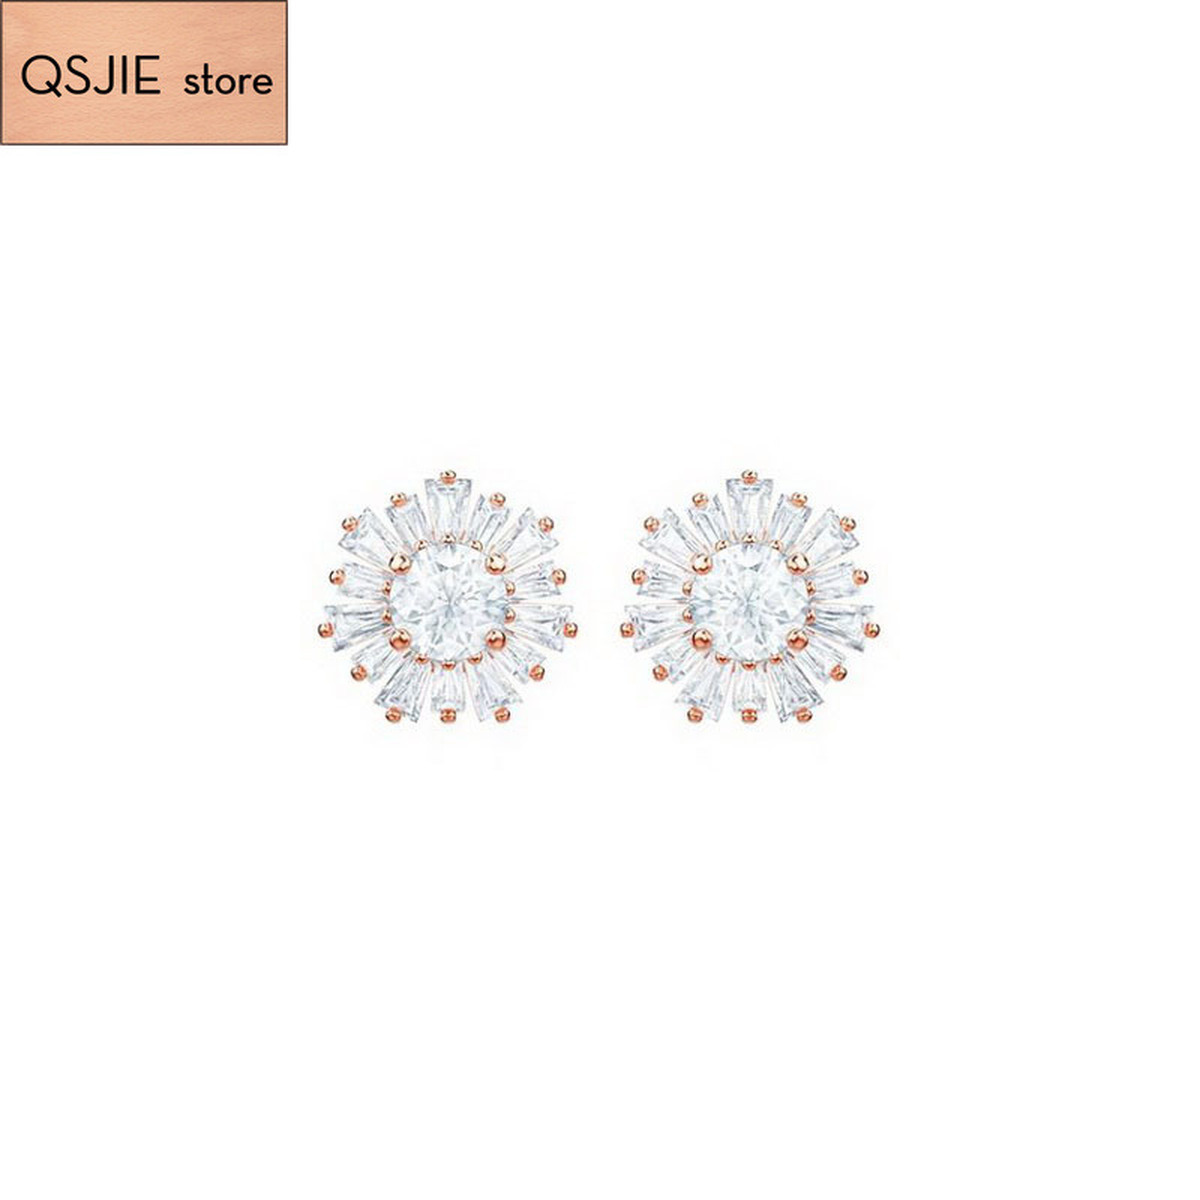 QSJIE High Quality Swa Original Jewelry Chamomile Earrings Glamorous fashion jewelry